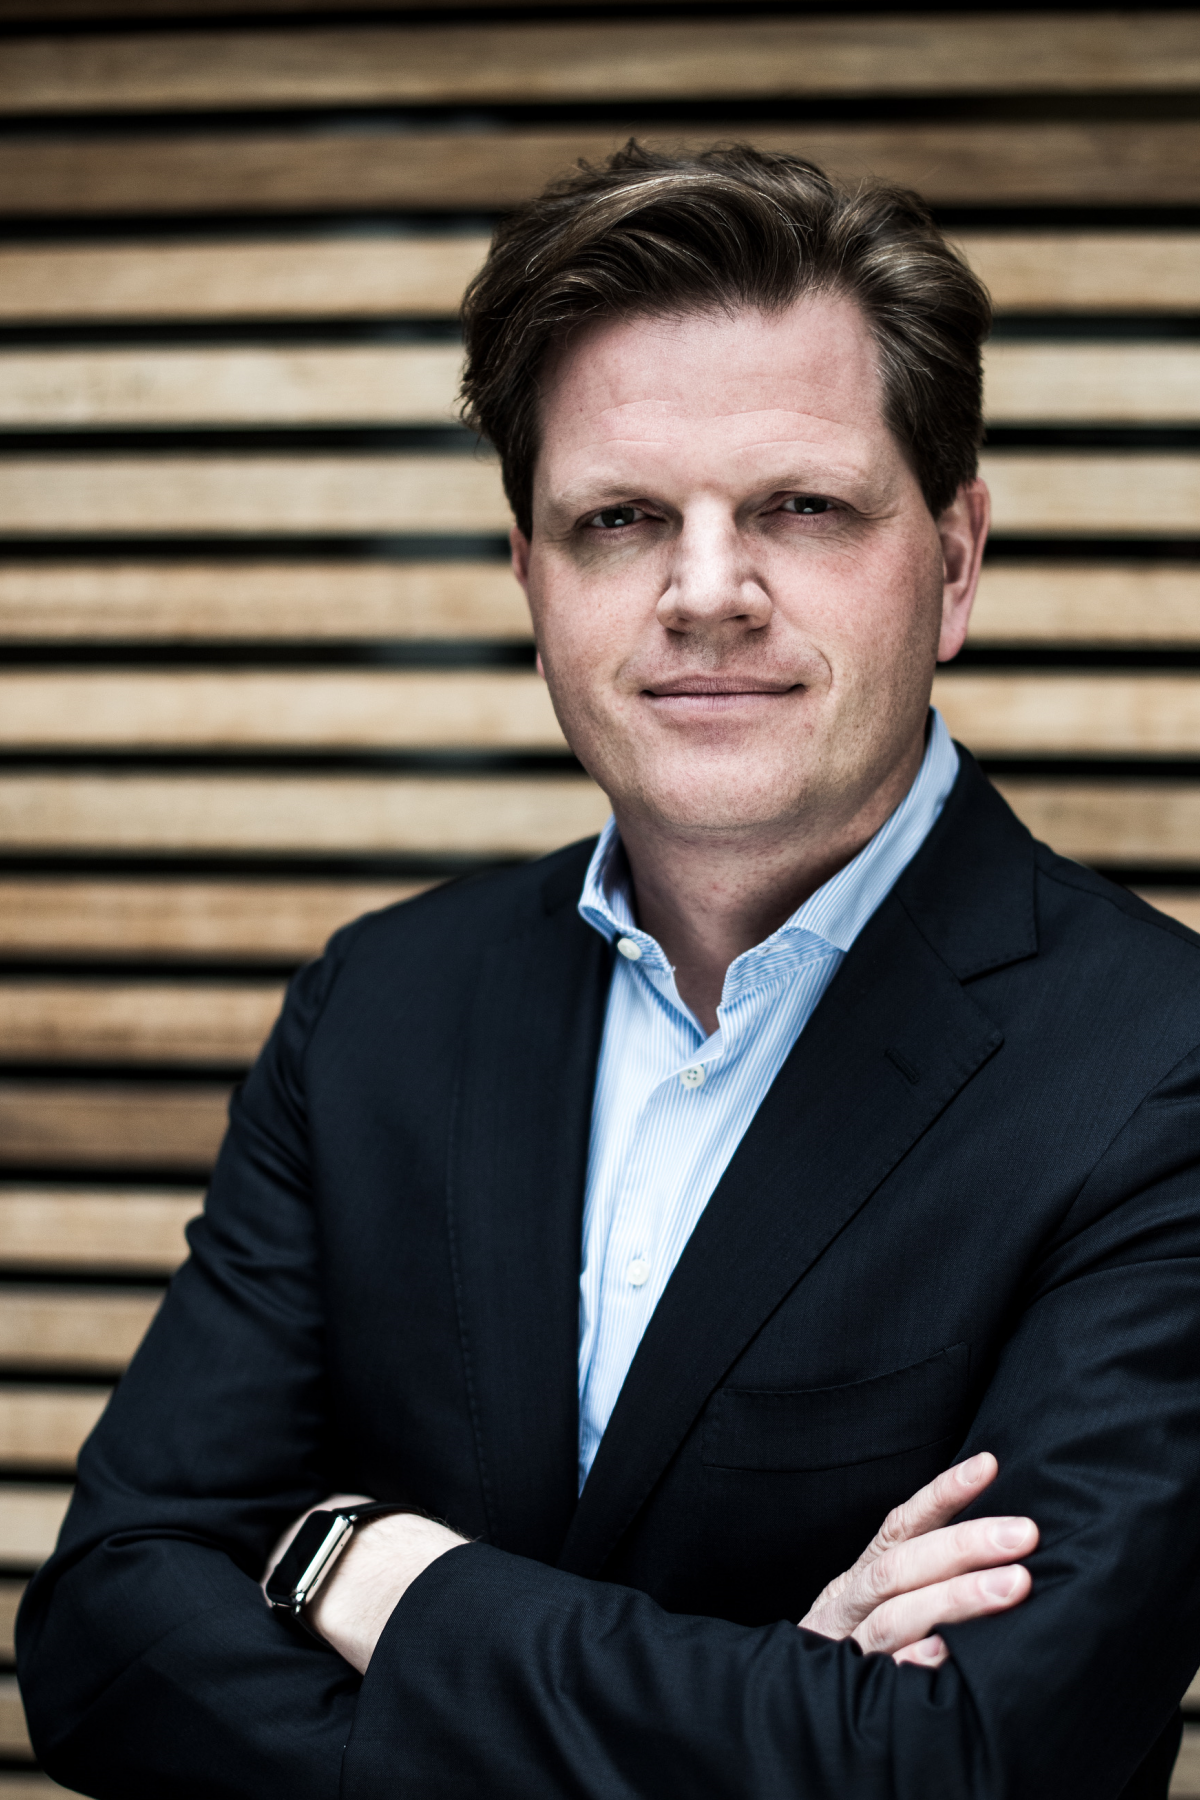 Miel Horsten, CEO de ALD Automotive Belgium